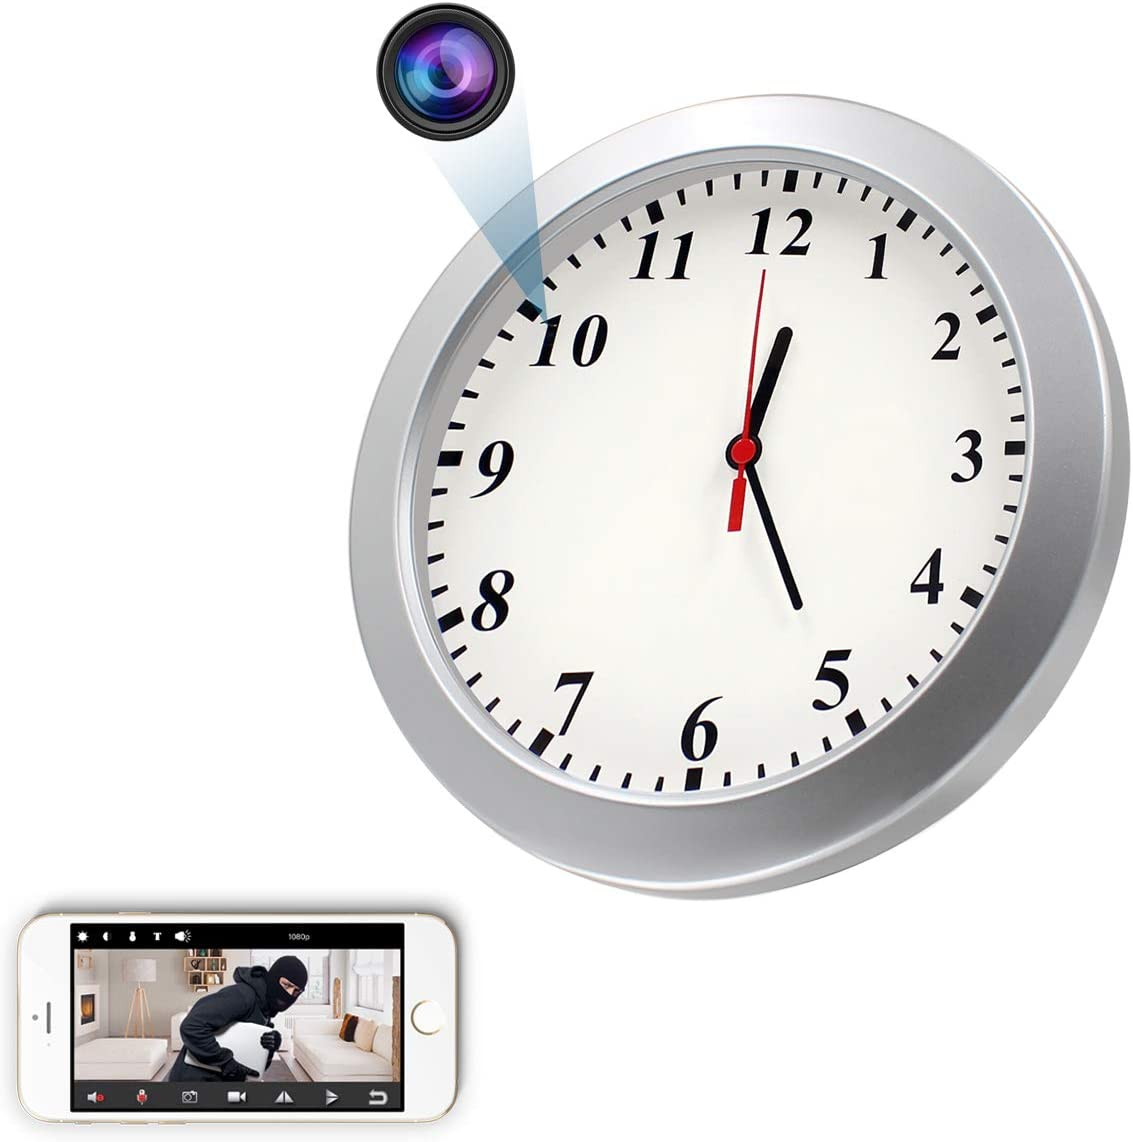 Spy WiFi Wall Clock Camera, CAMXSW HD 1080P Wireless Hidden Camera Alarm Clock for Home Security Nanny Cam Support iOS/Android/PC Remote Real-time Video and Motion Detection Alarm